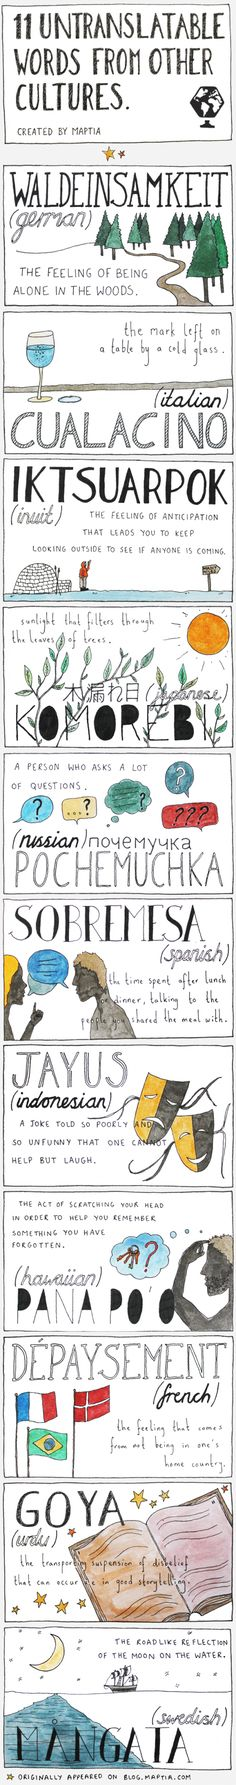 11 Untranslatable Words From Other Cultures Infographic by Ella Frances Sanders